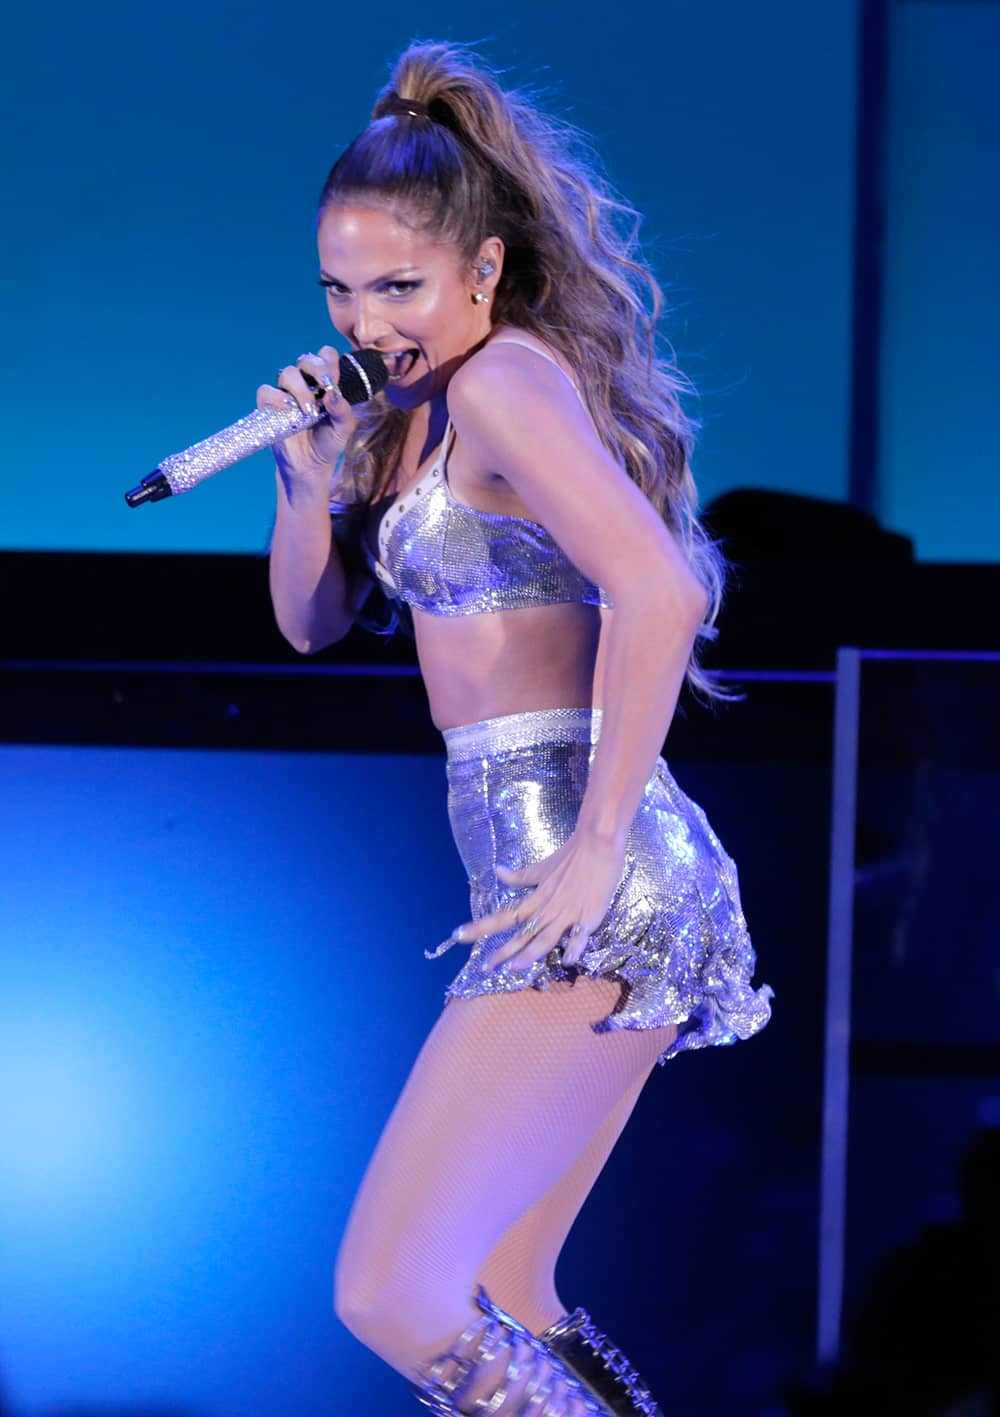 Jennifer Lopez performs on stage at CBS Radio's second annual We Can Survive concert at the Hollywood Bowl in Los Angeles.